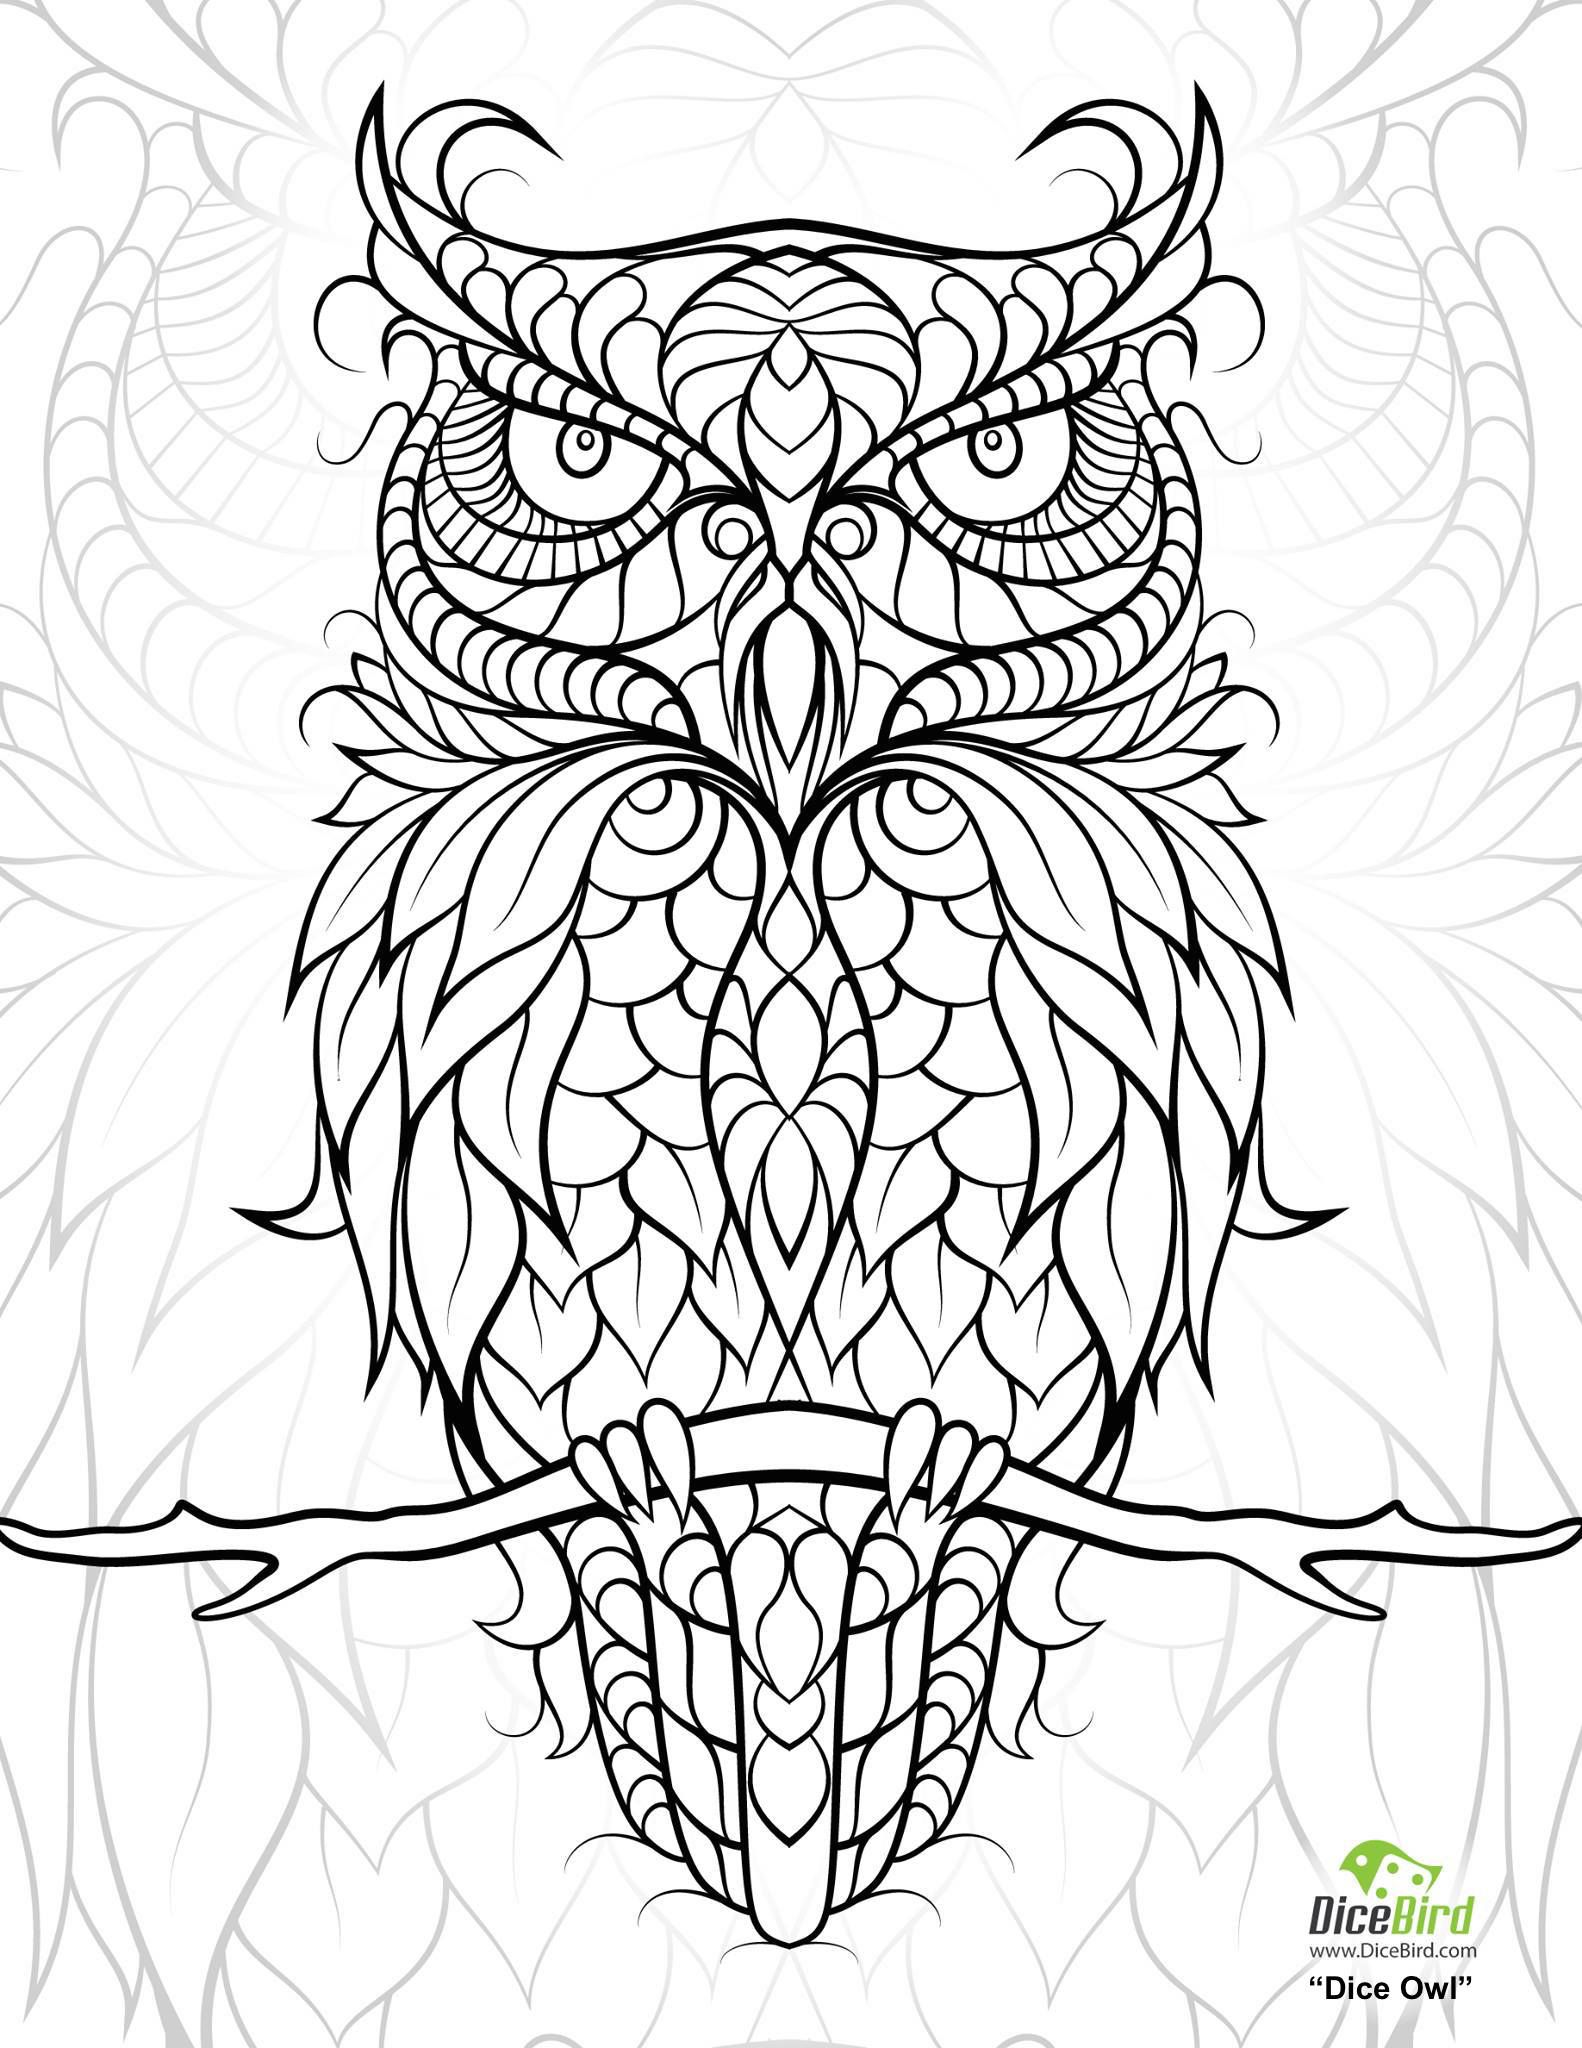 diceowlfree printable adult coloring pages Owl coloring